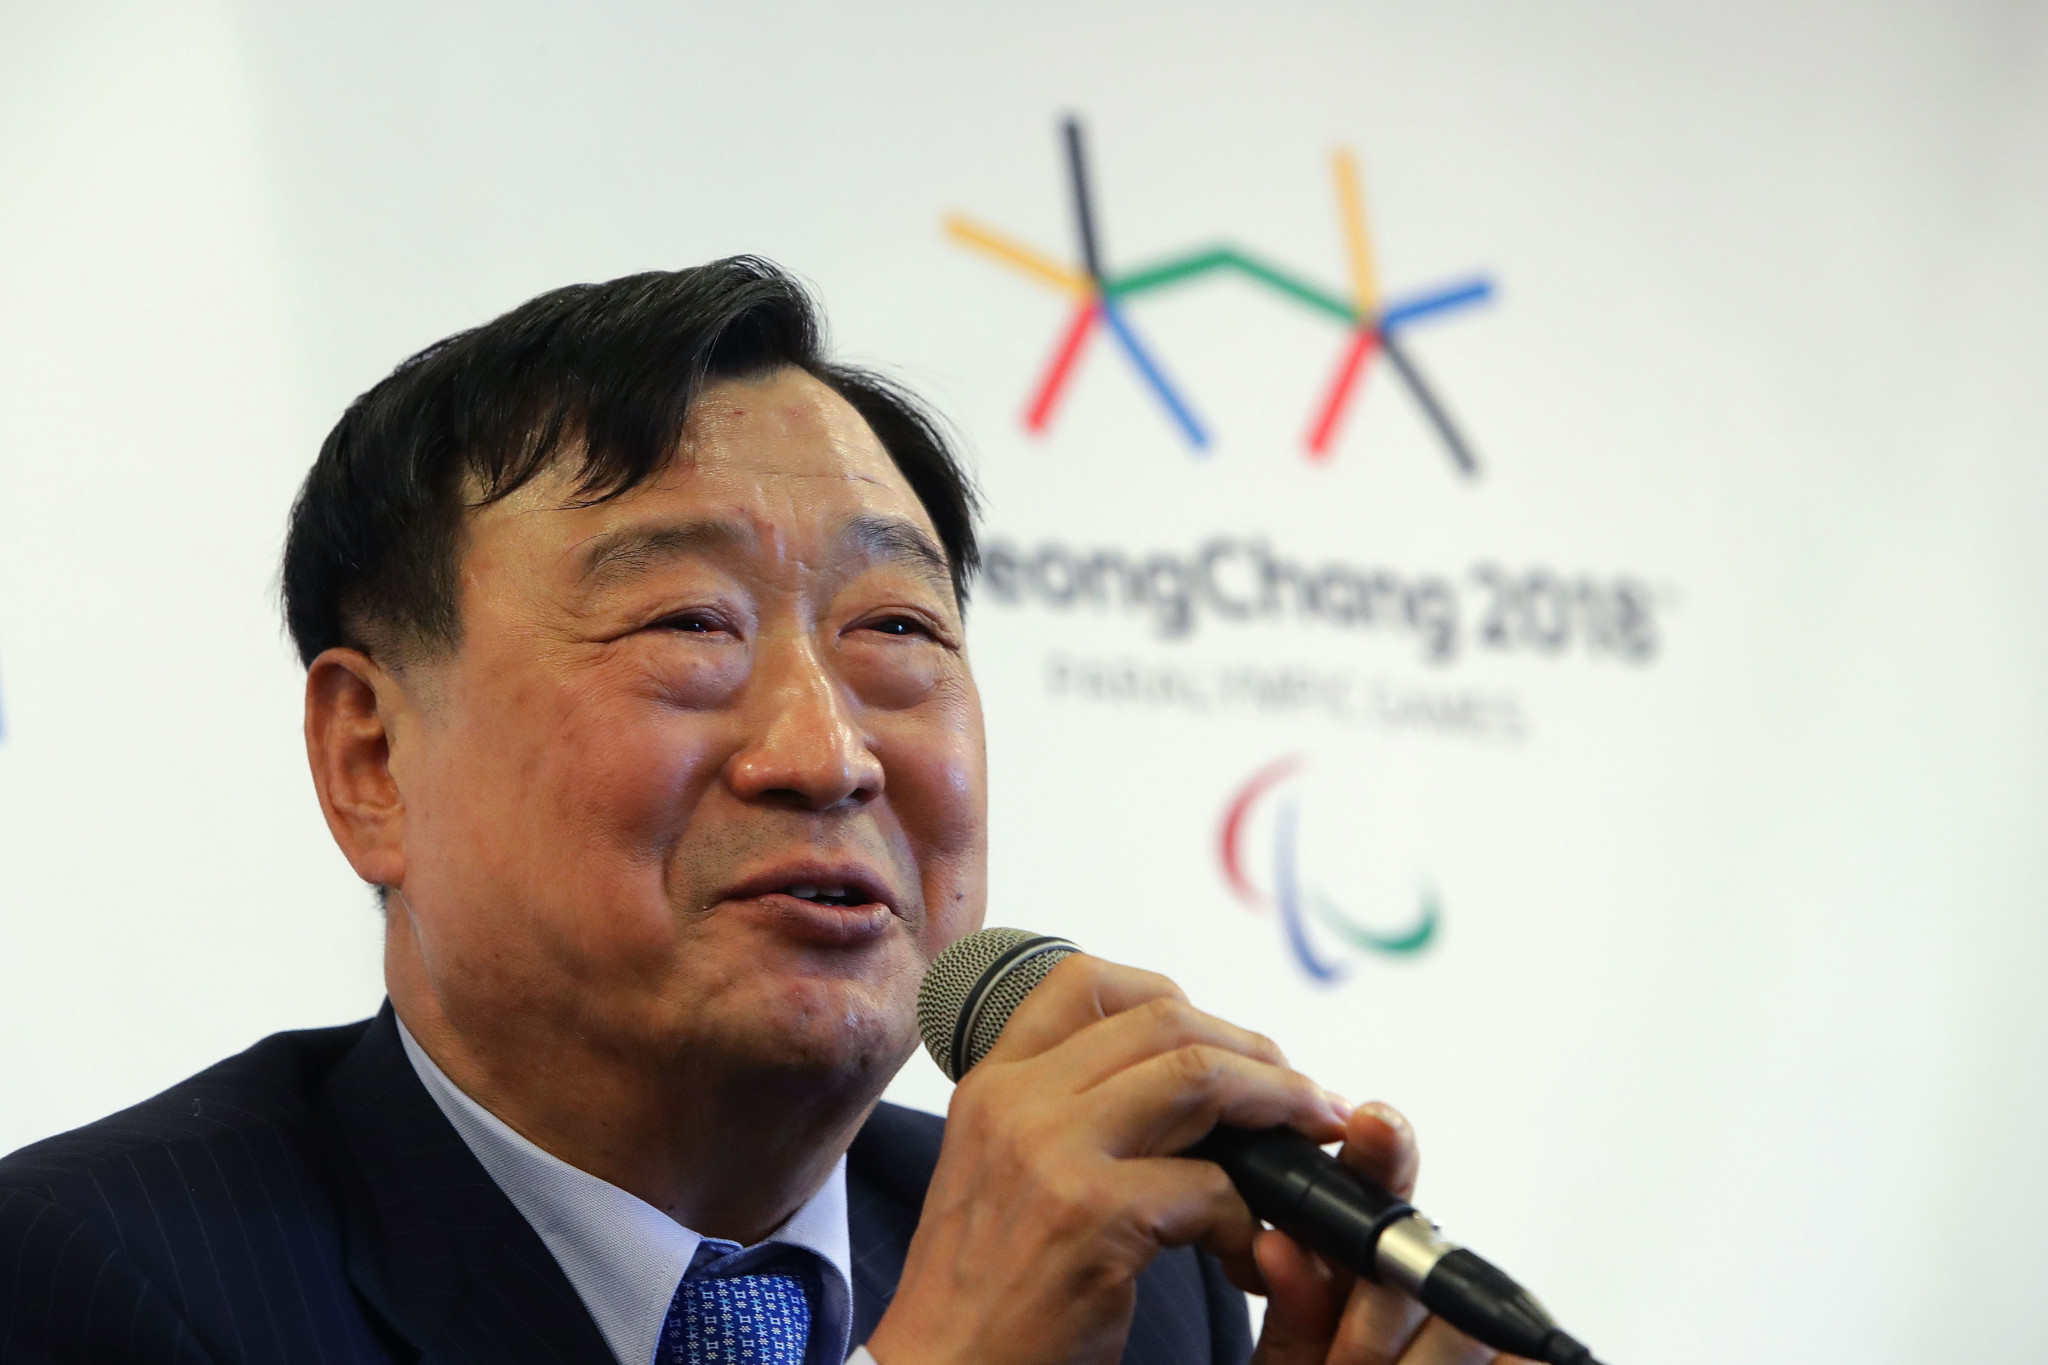 Pyeongchang 2018 President downplays concerns and calls for Russian and North Korean participation